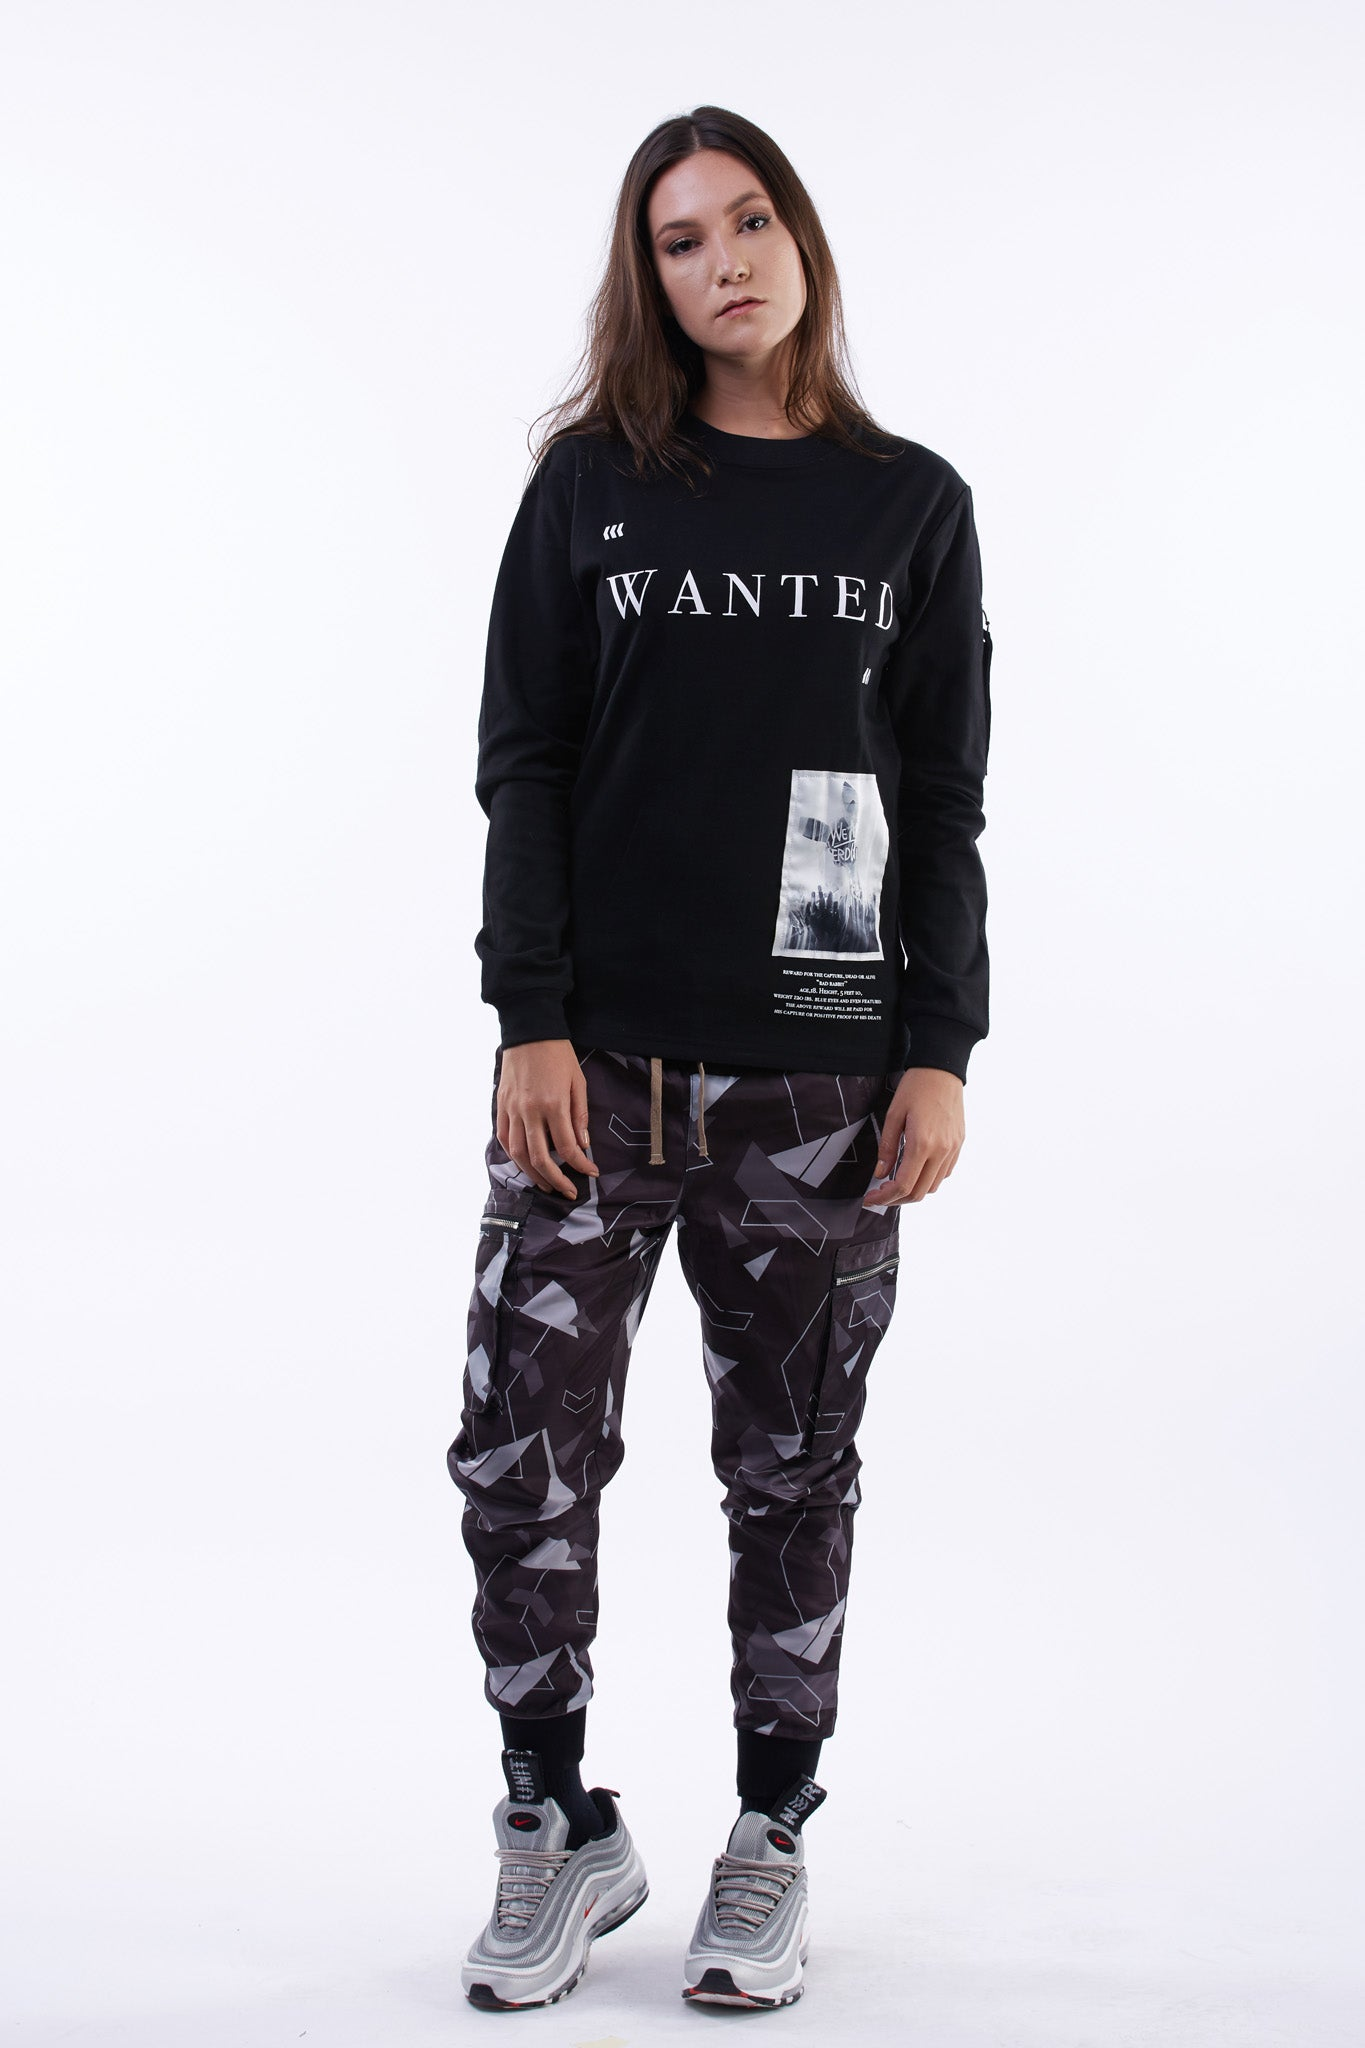 WANTED LONG SLEEVES TEE ( ウォンテッド ロングスリーブ Tシャツ )